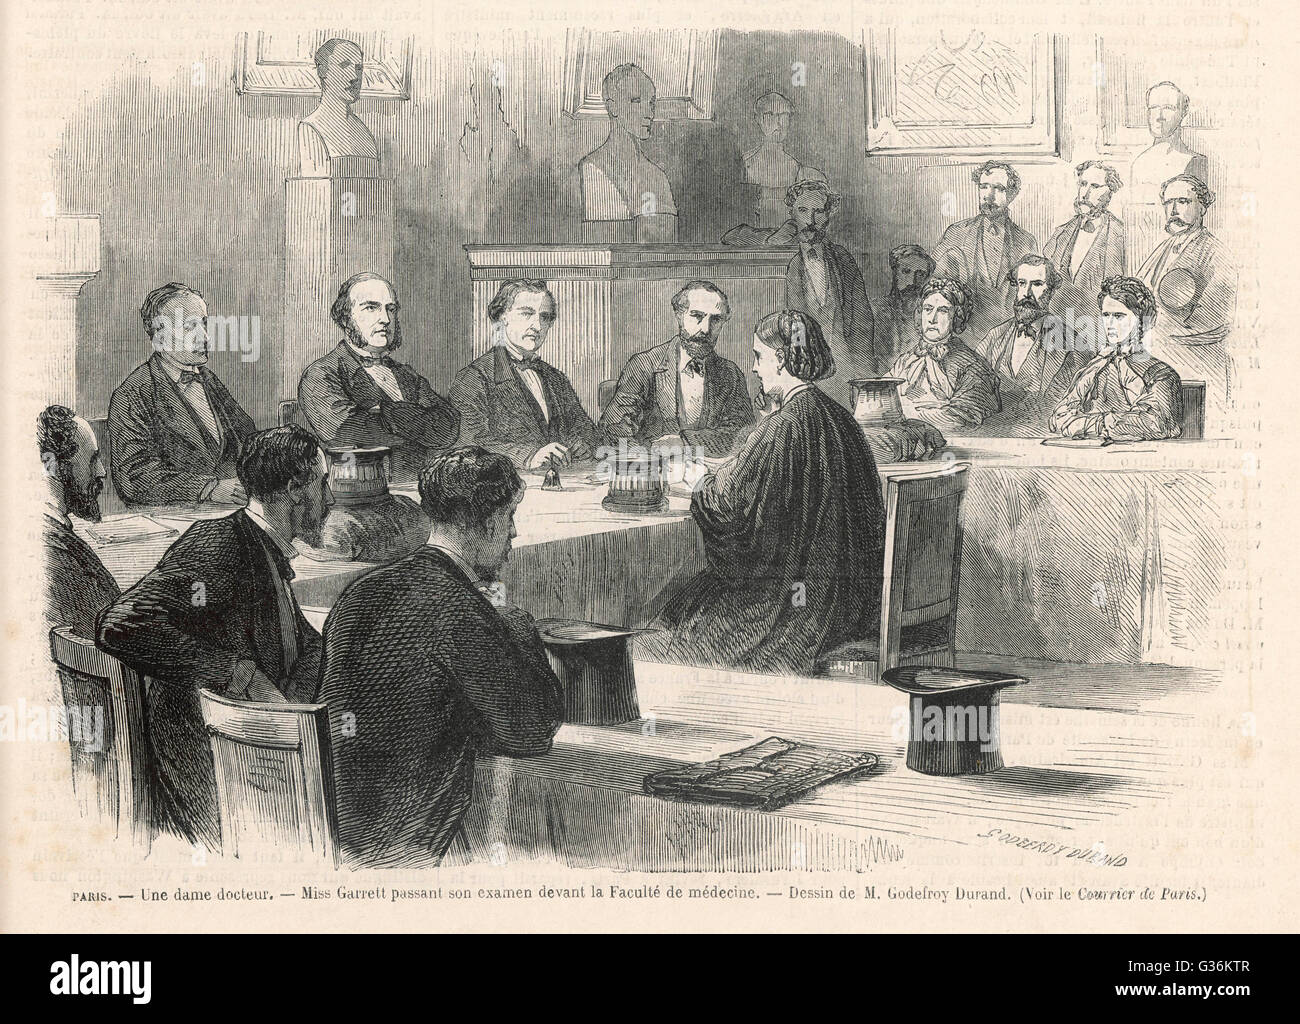 Elizabeth Garrett (later  Anderson) (1836-1917) passes her doctoral  examination at the Faculte de  Medecine, Paris - Stock Image